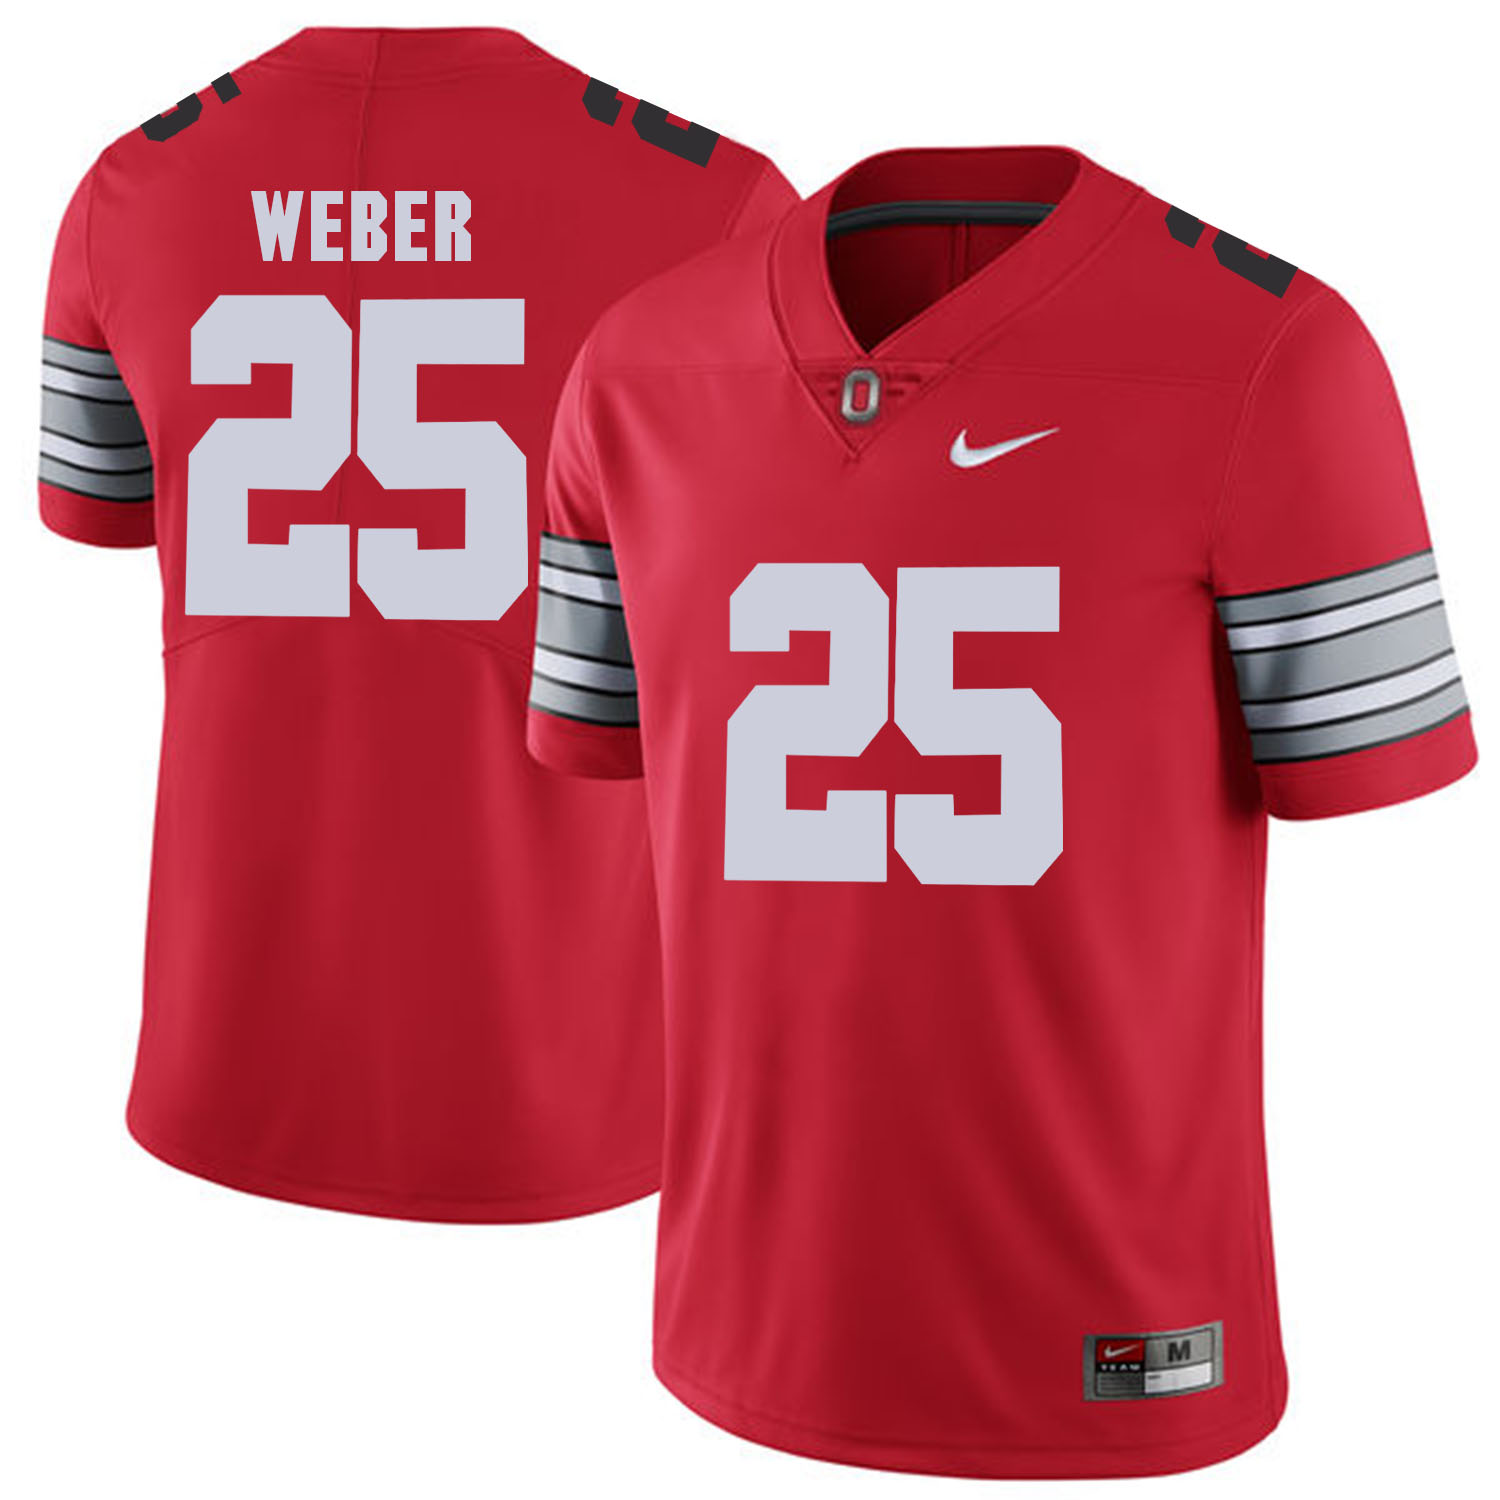 Men Ohio State 25 Weber Red Customized NCAA Jerseys